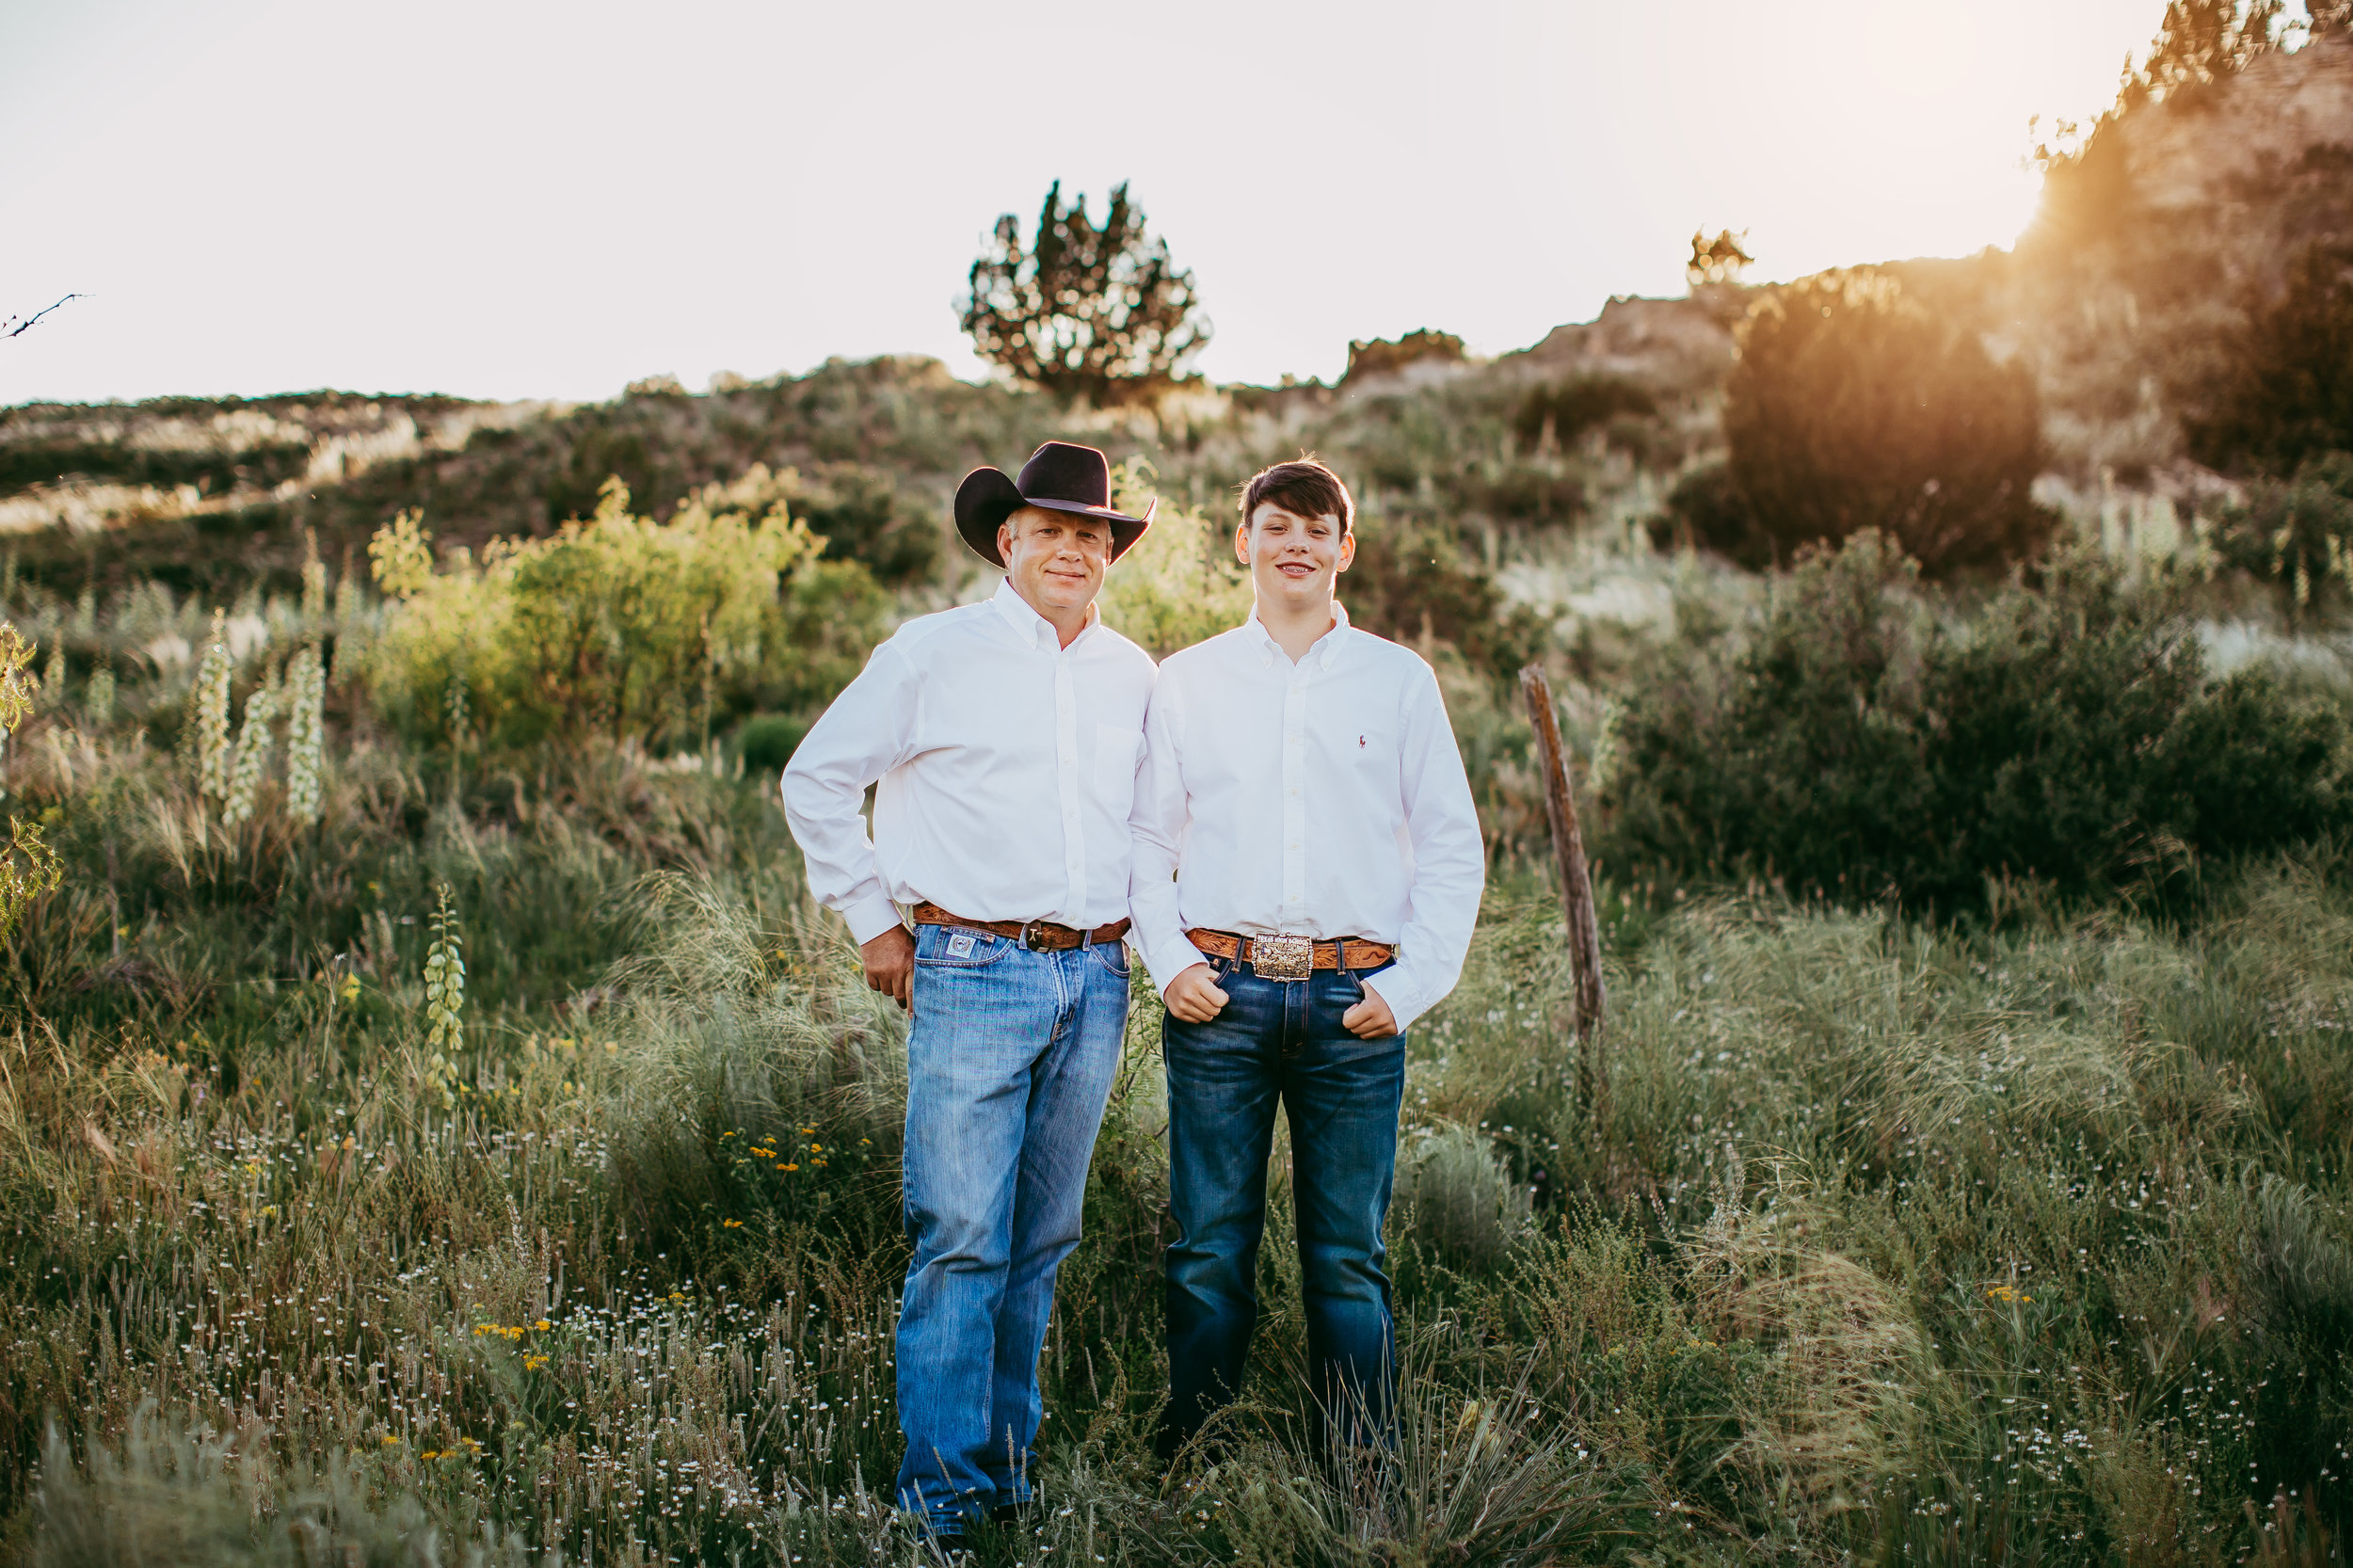 Father and son on their family ranch as the men of the house #tealawardphotography #texasfamilyphotographer #amarillophotographer #amarillofamilyphotographer #lifestylephotography #emotionalphotography #familyphotosoot #family #lovingsiblings #purejoy #familyphotos #familyphotographer #greatoutdoors